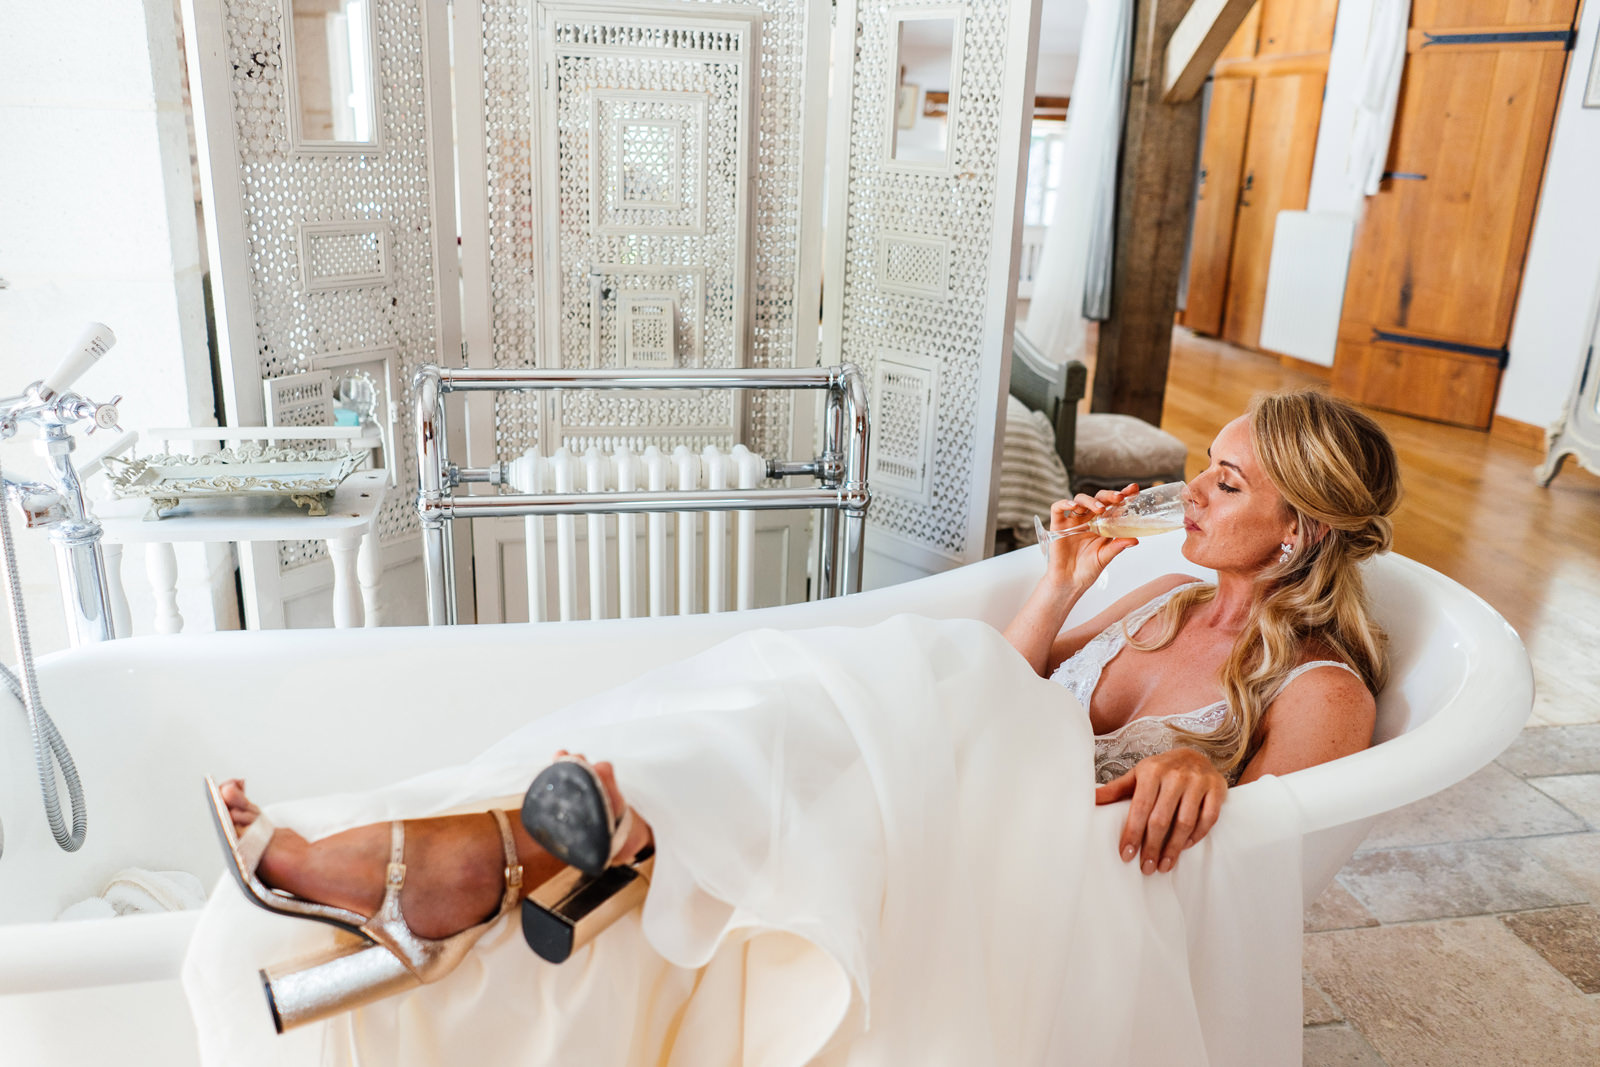 bride in her wedding dress drinking champagne in the bath